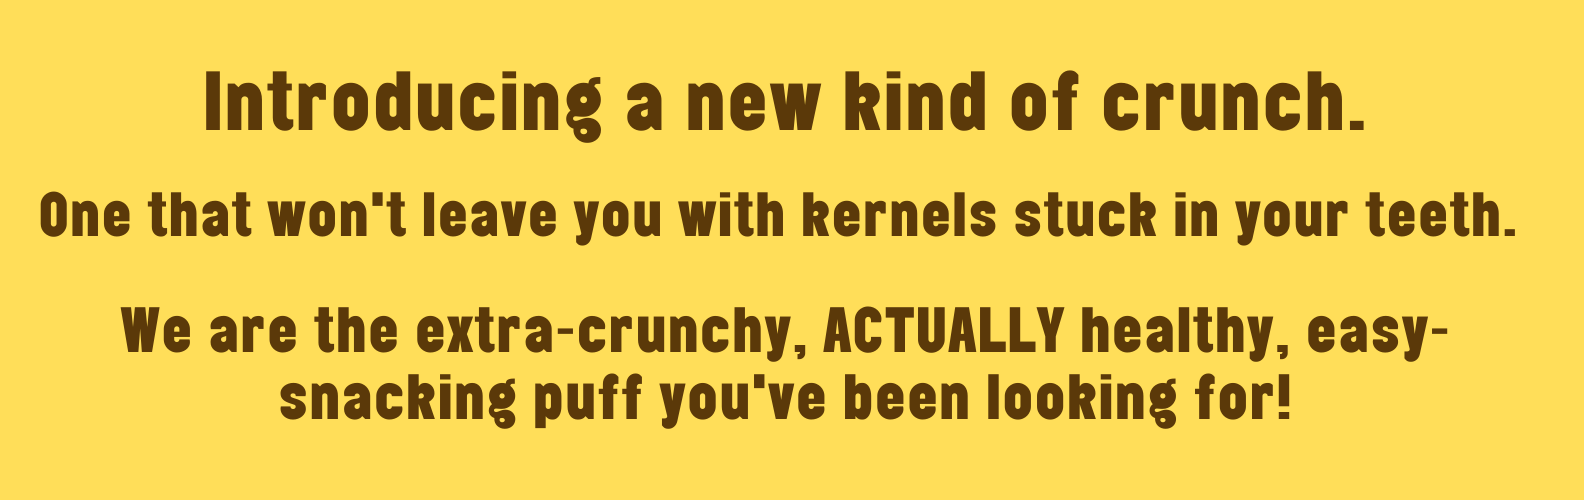 introducing a new kind of crunch. one that won't leave you with kernels stuck in your teeth. we are the extra-crunchy, ACTUALLY healthy, easy-snacking puff you've been looking for!